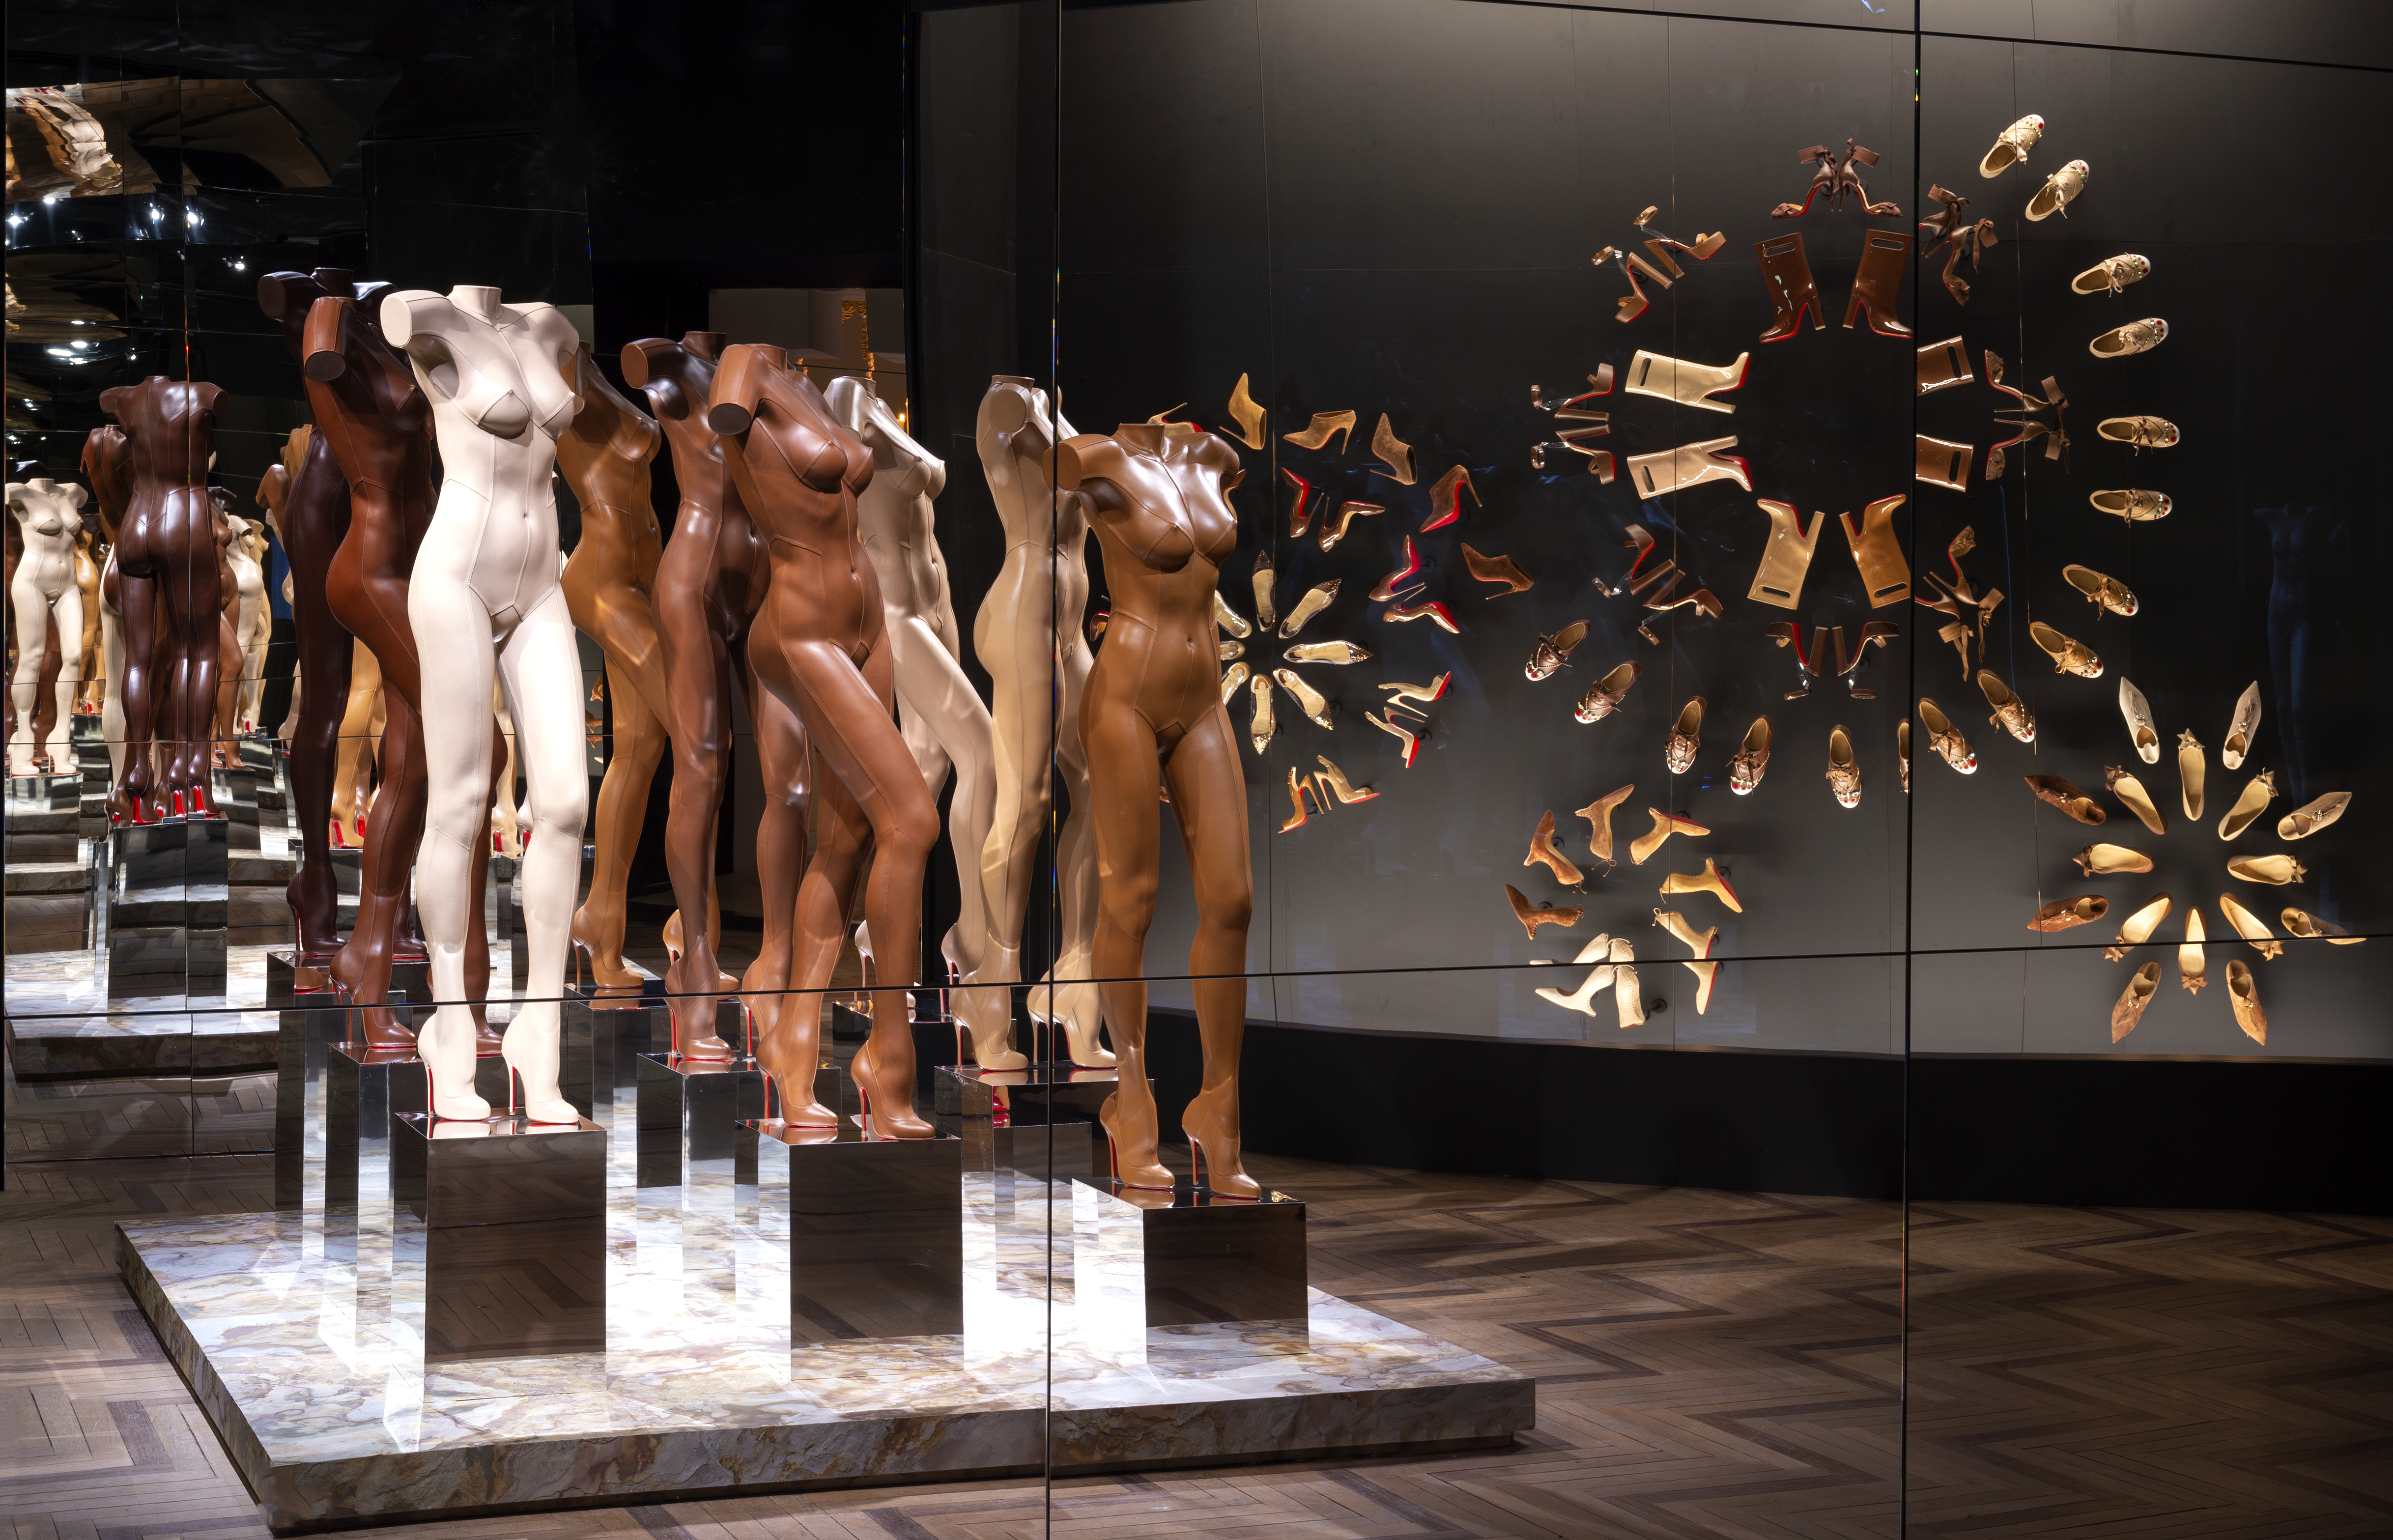 nude leather figures at louboutin exhibition